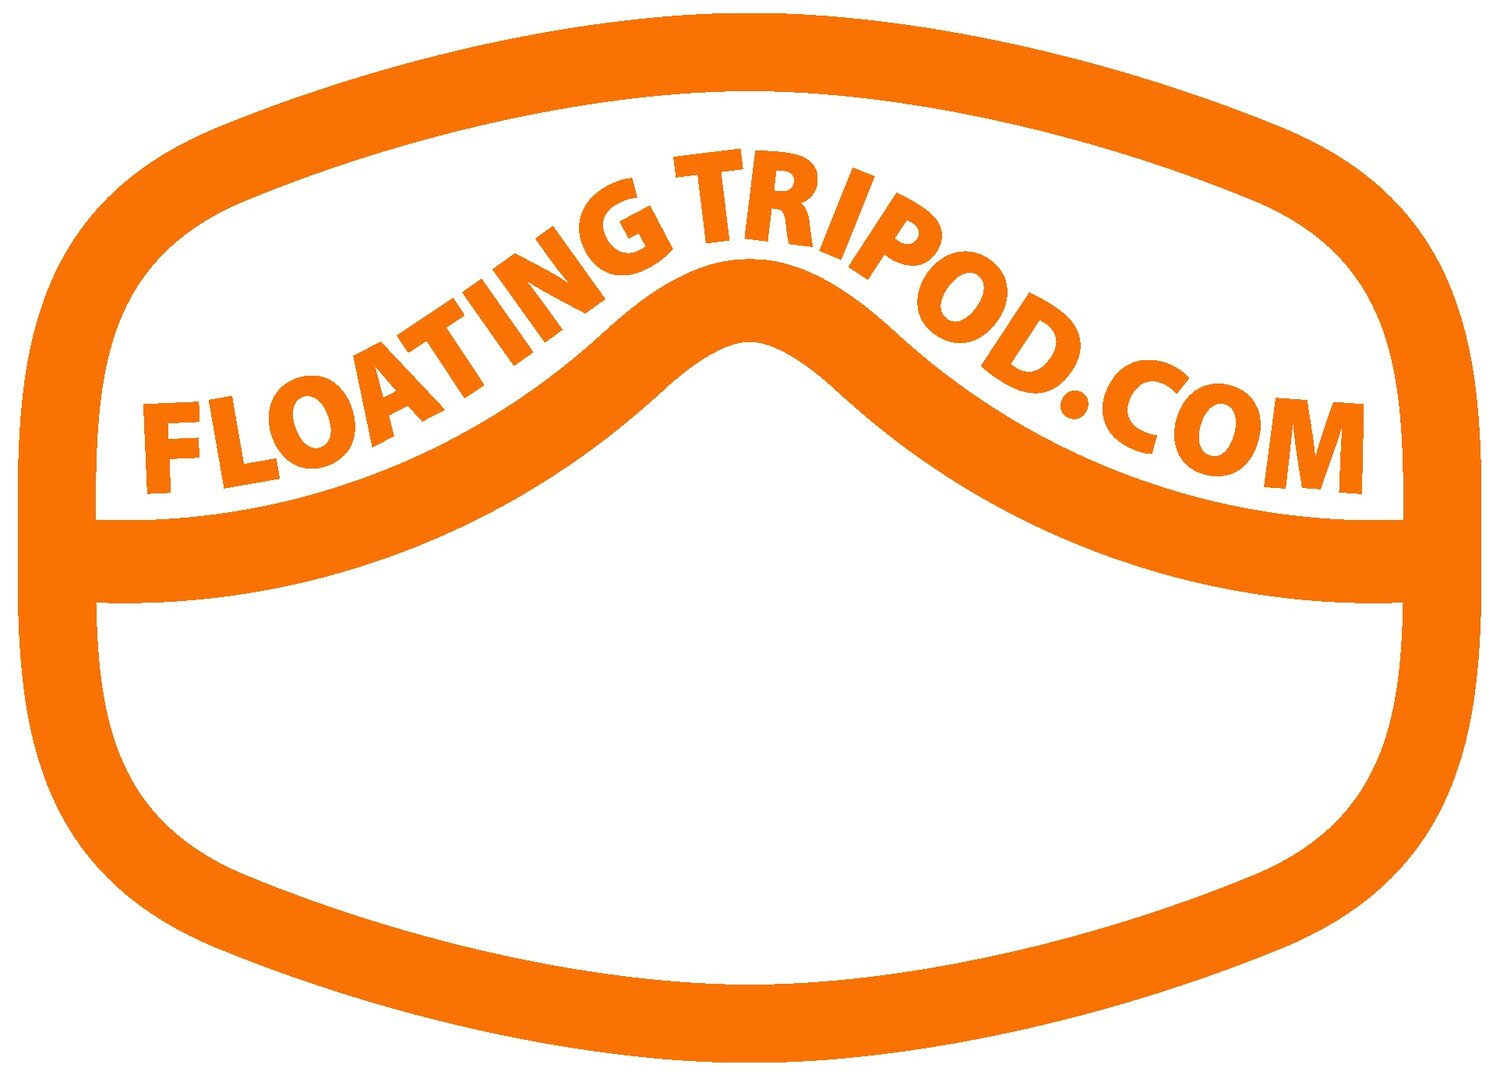 floatingtripod.com